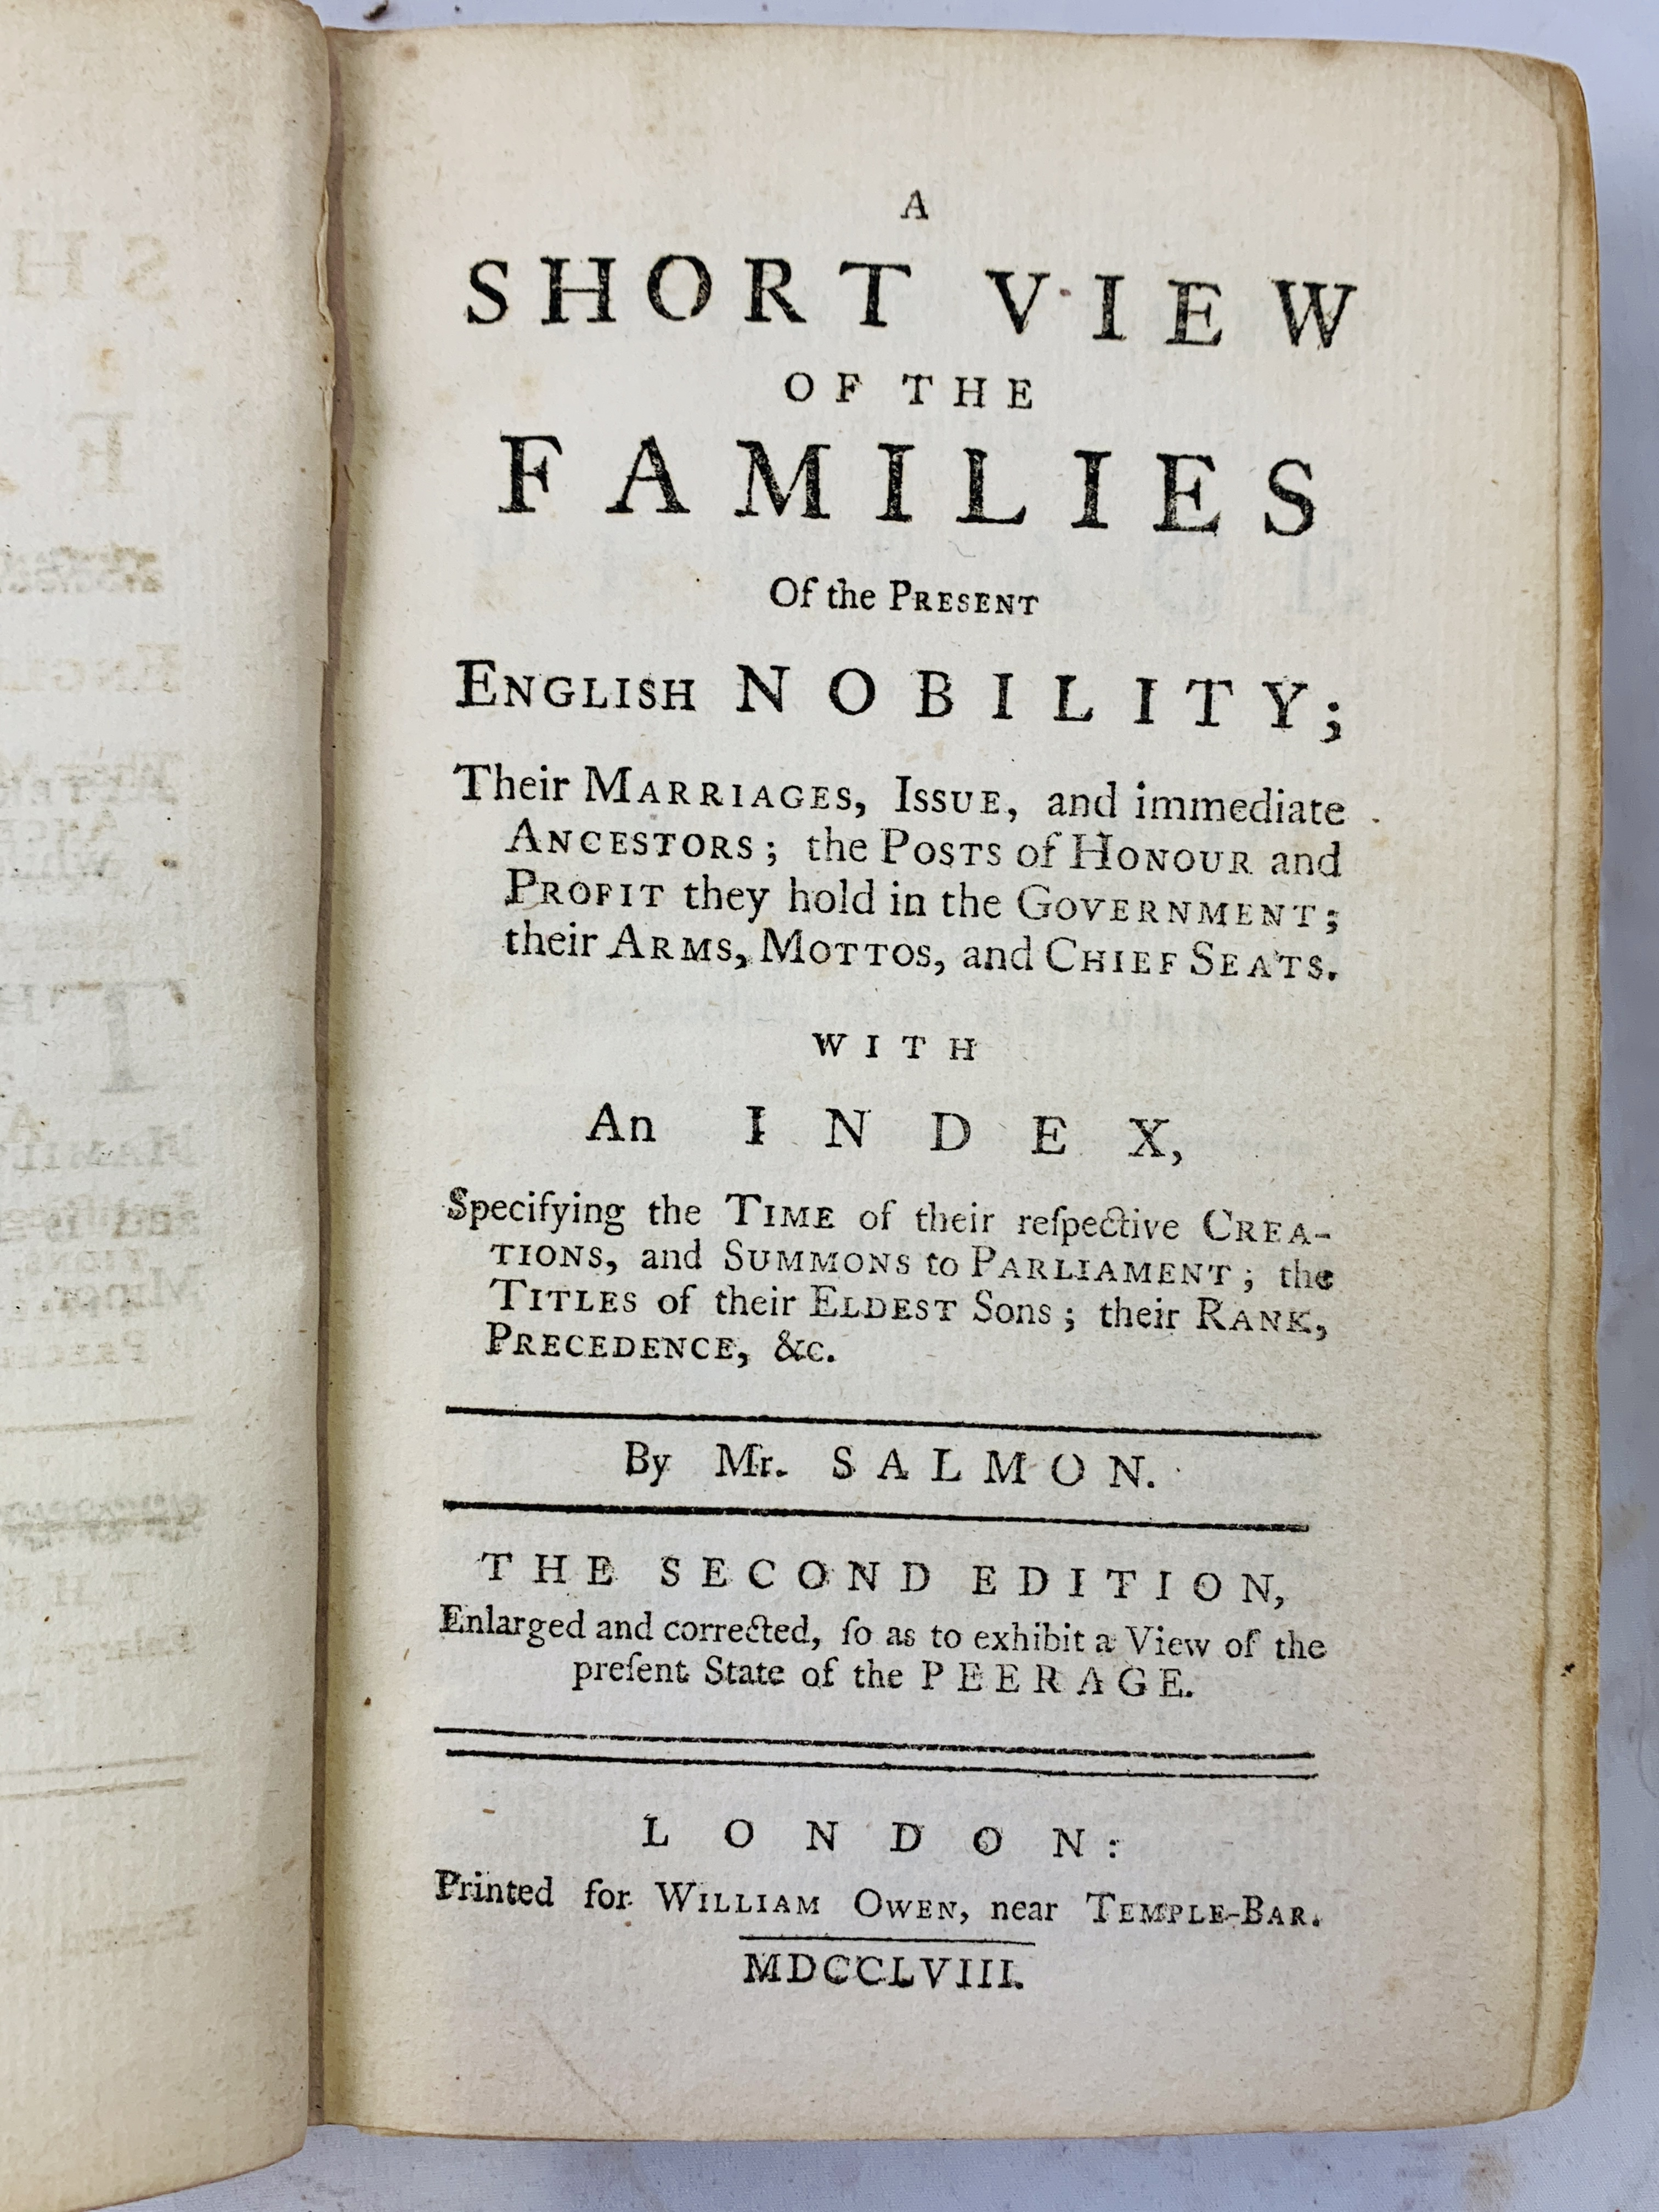 A Short View of the Families of the Present English Nobility, 1758 by Mr Salmon - Image 2 of 4